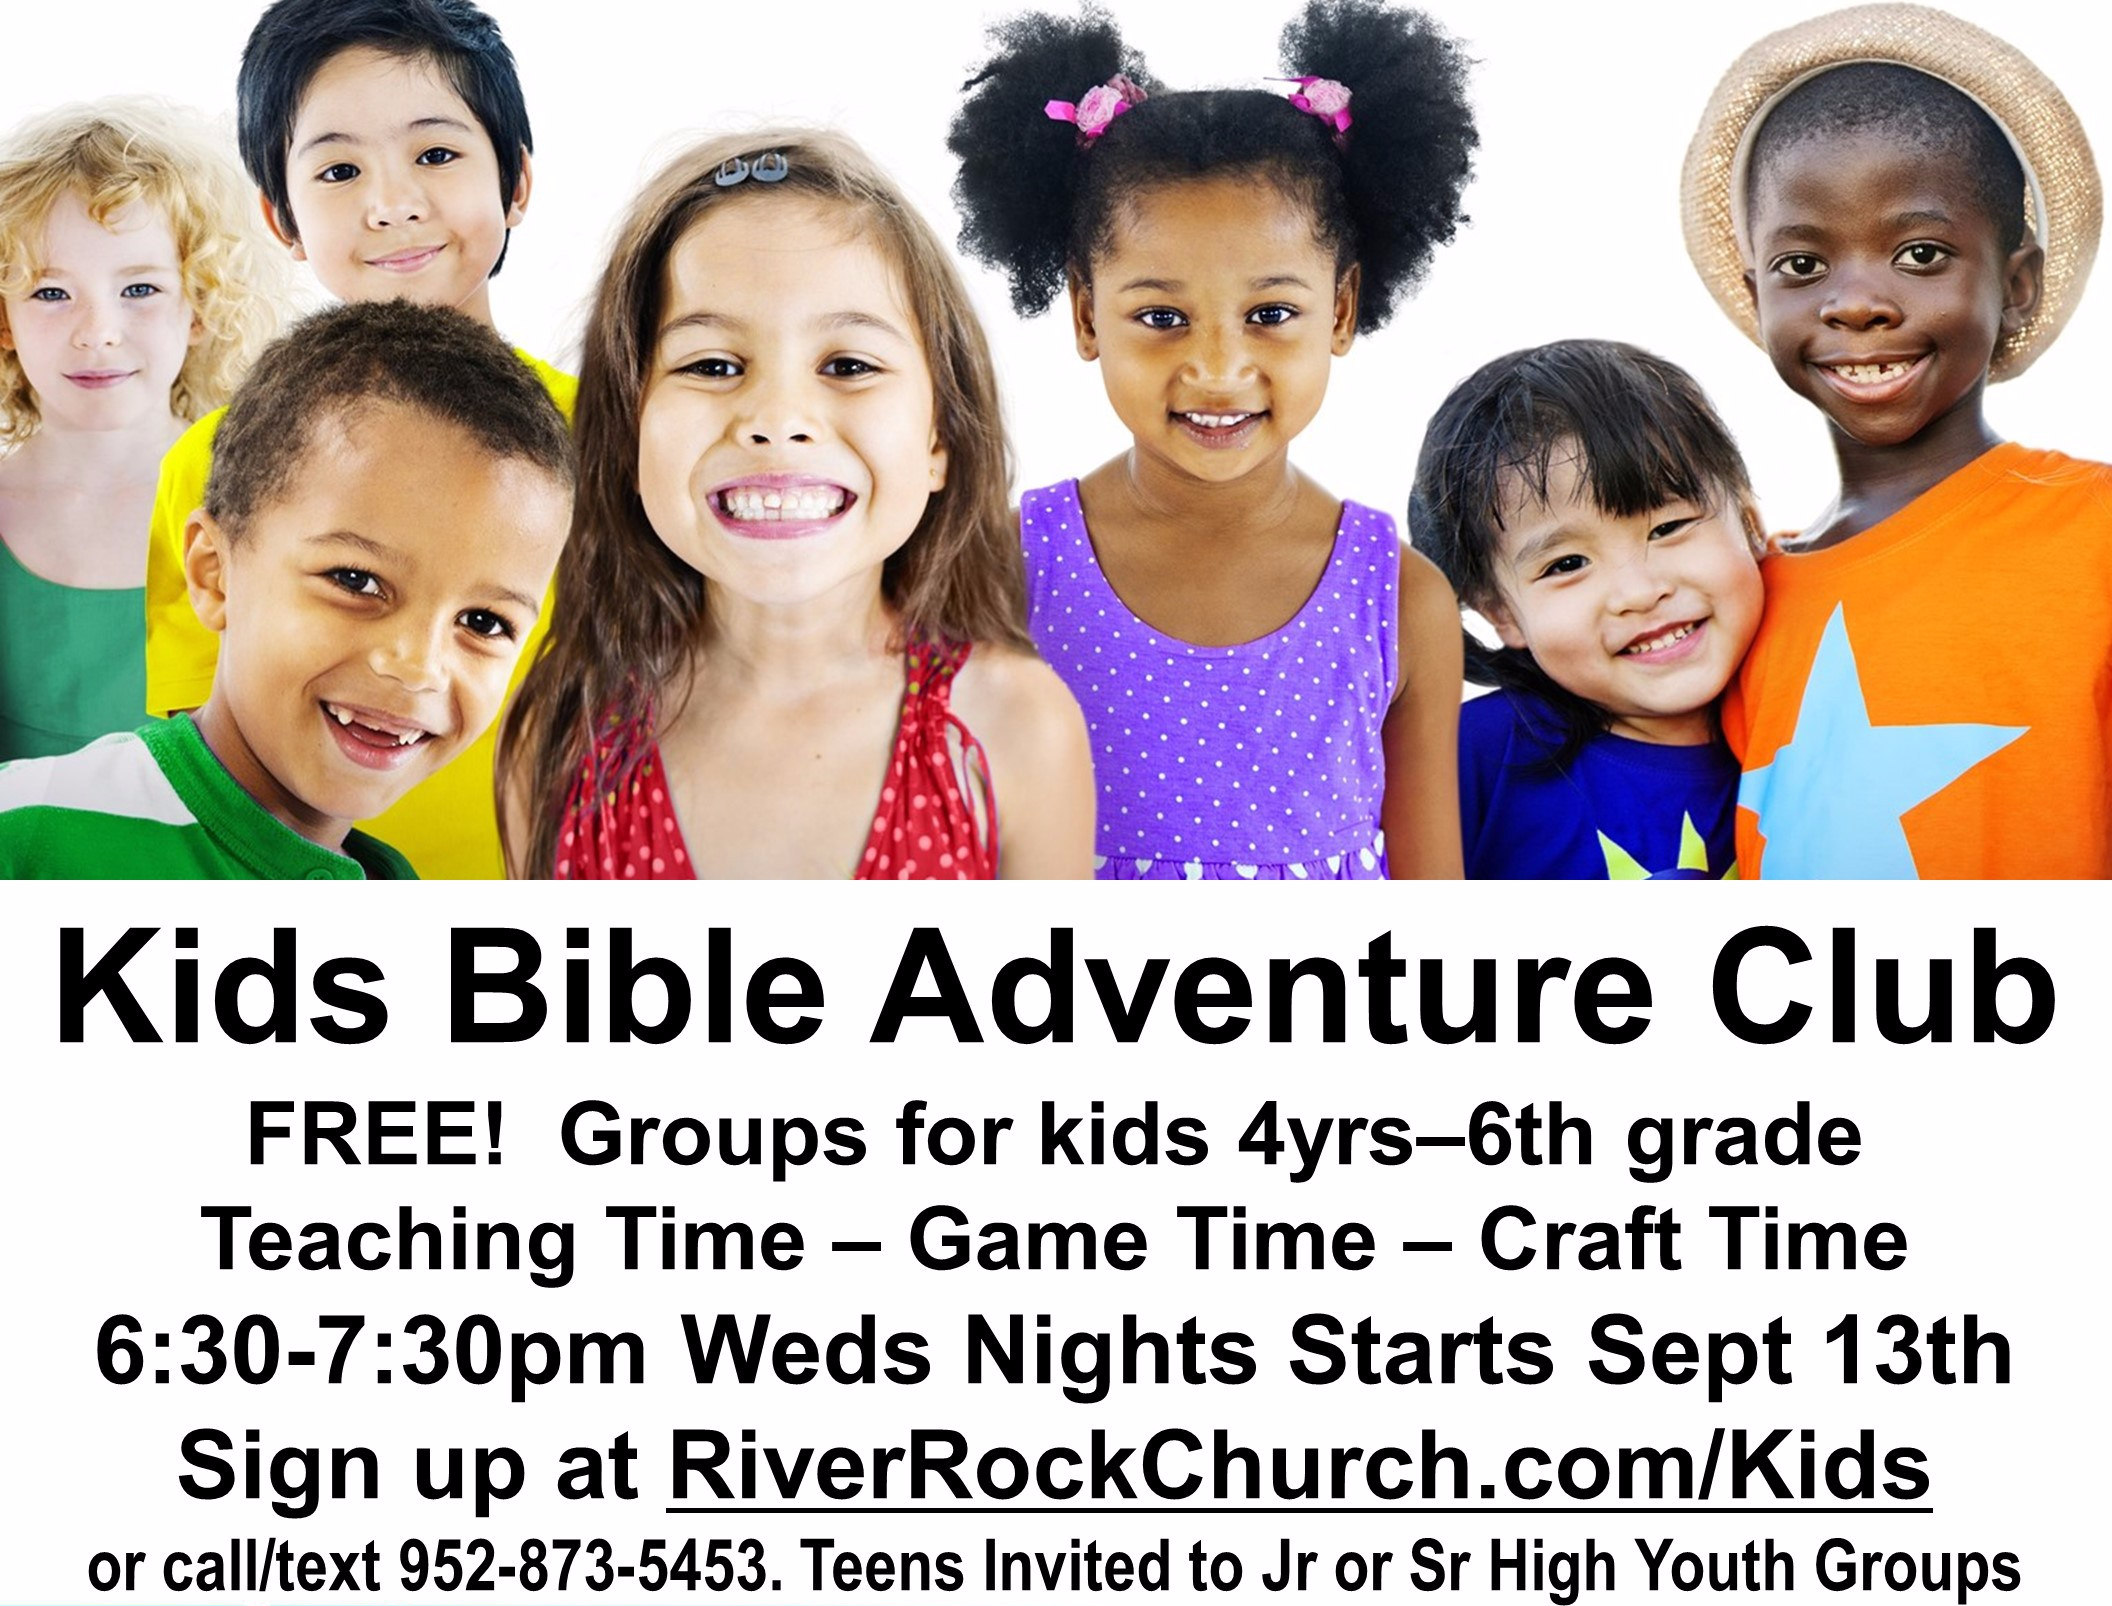 Sign Up for Kids Bible Adventure Club